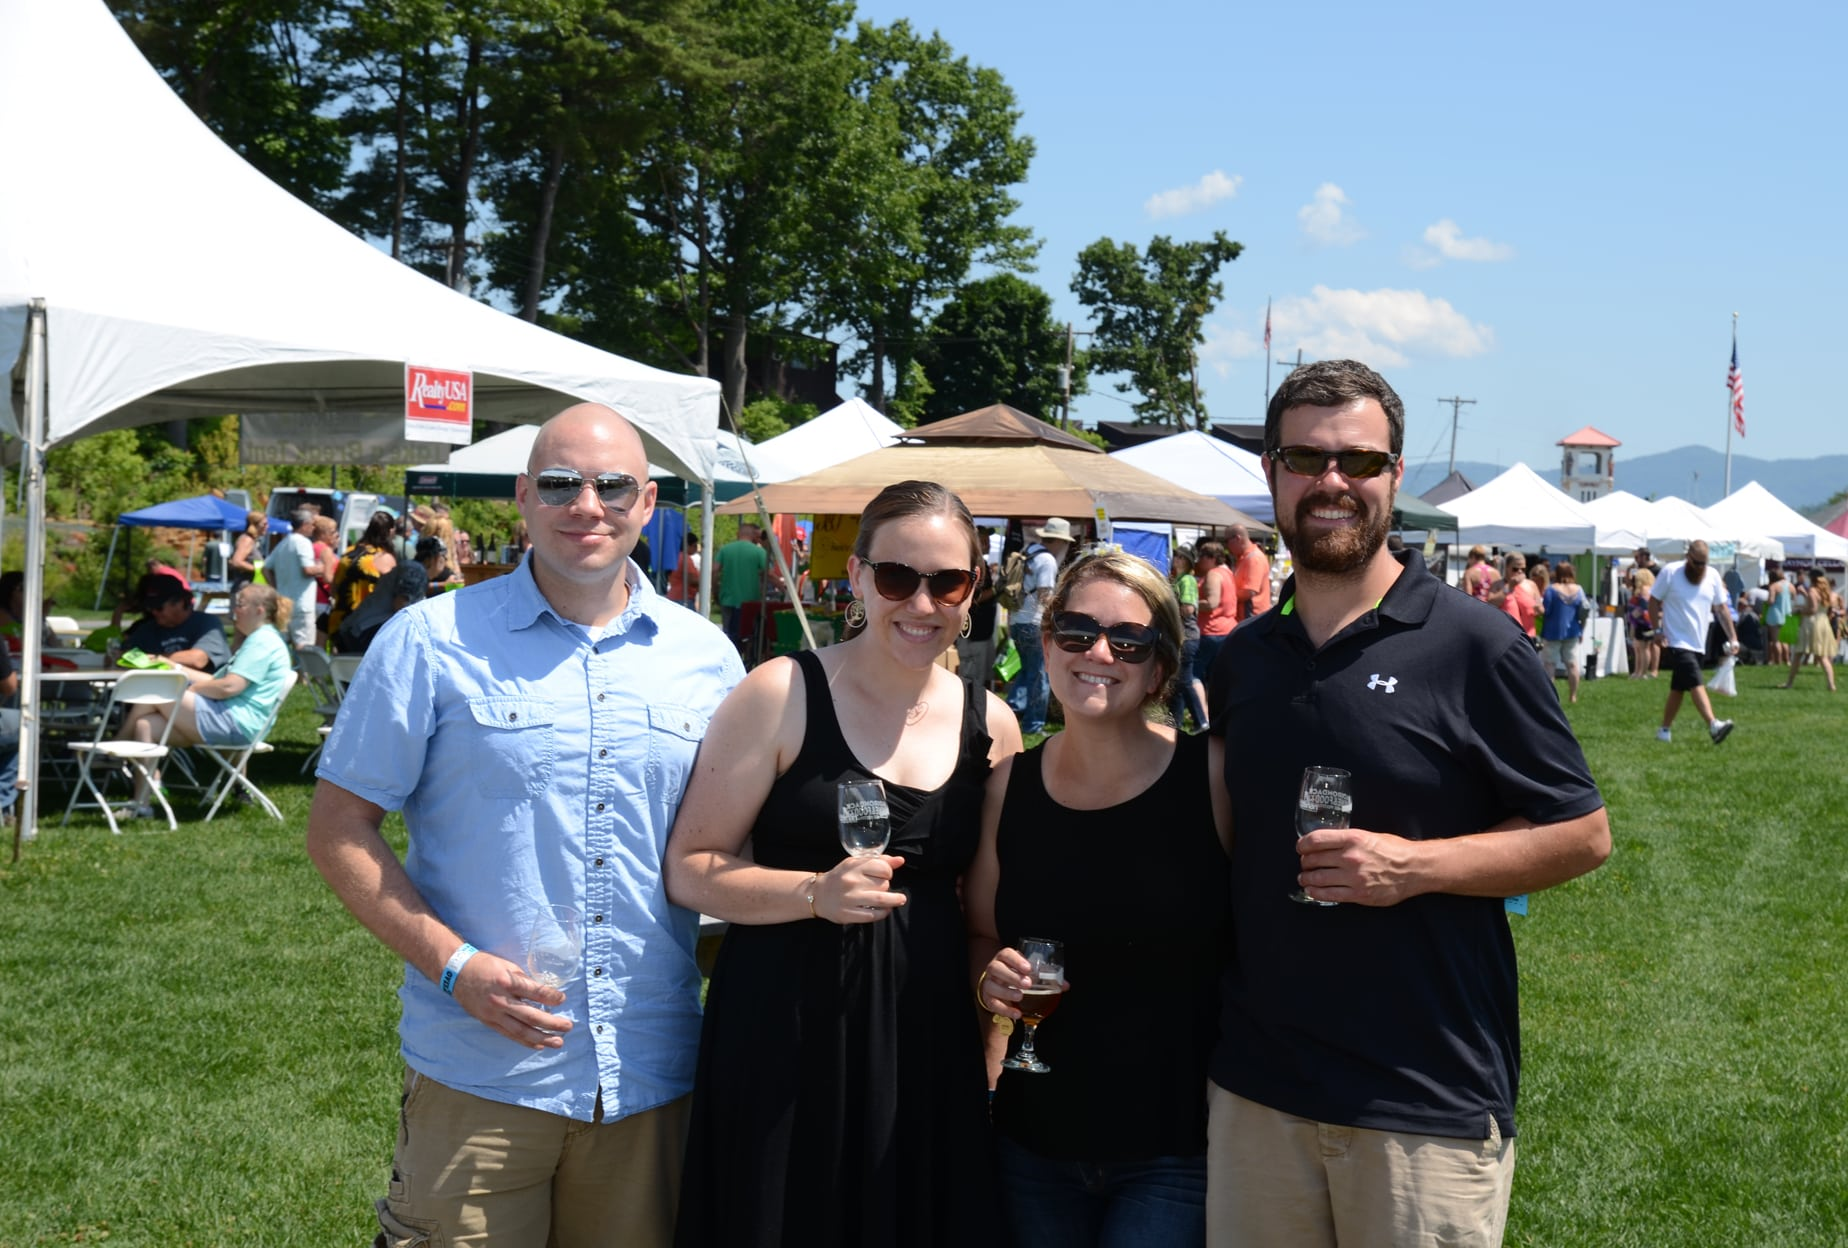 Friends enjoy themselves at the Adirondack Wine and Food Festival